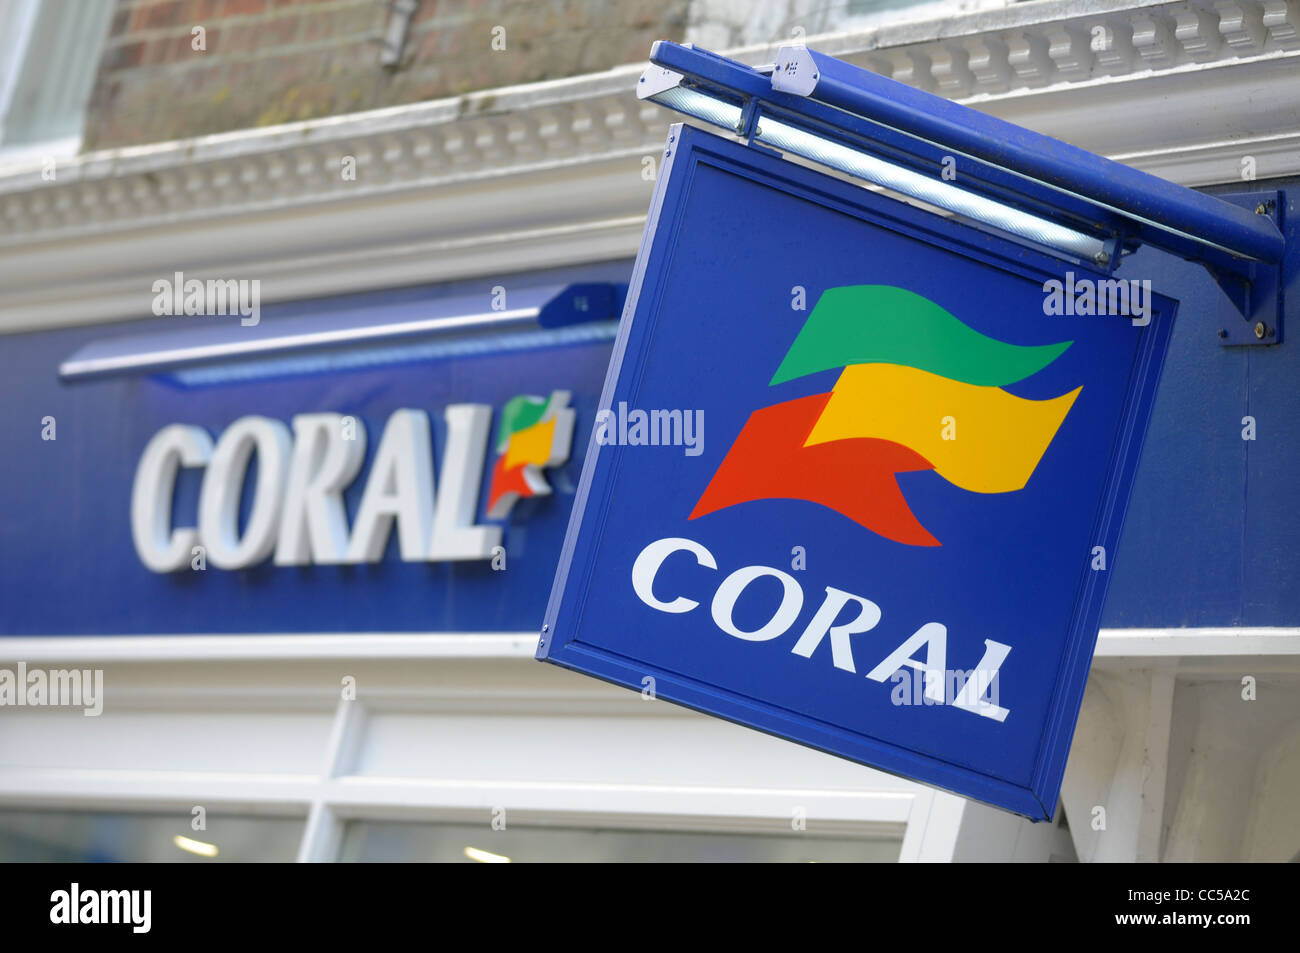 Coral betting shop, UK - Stock Image